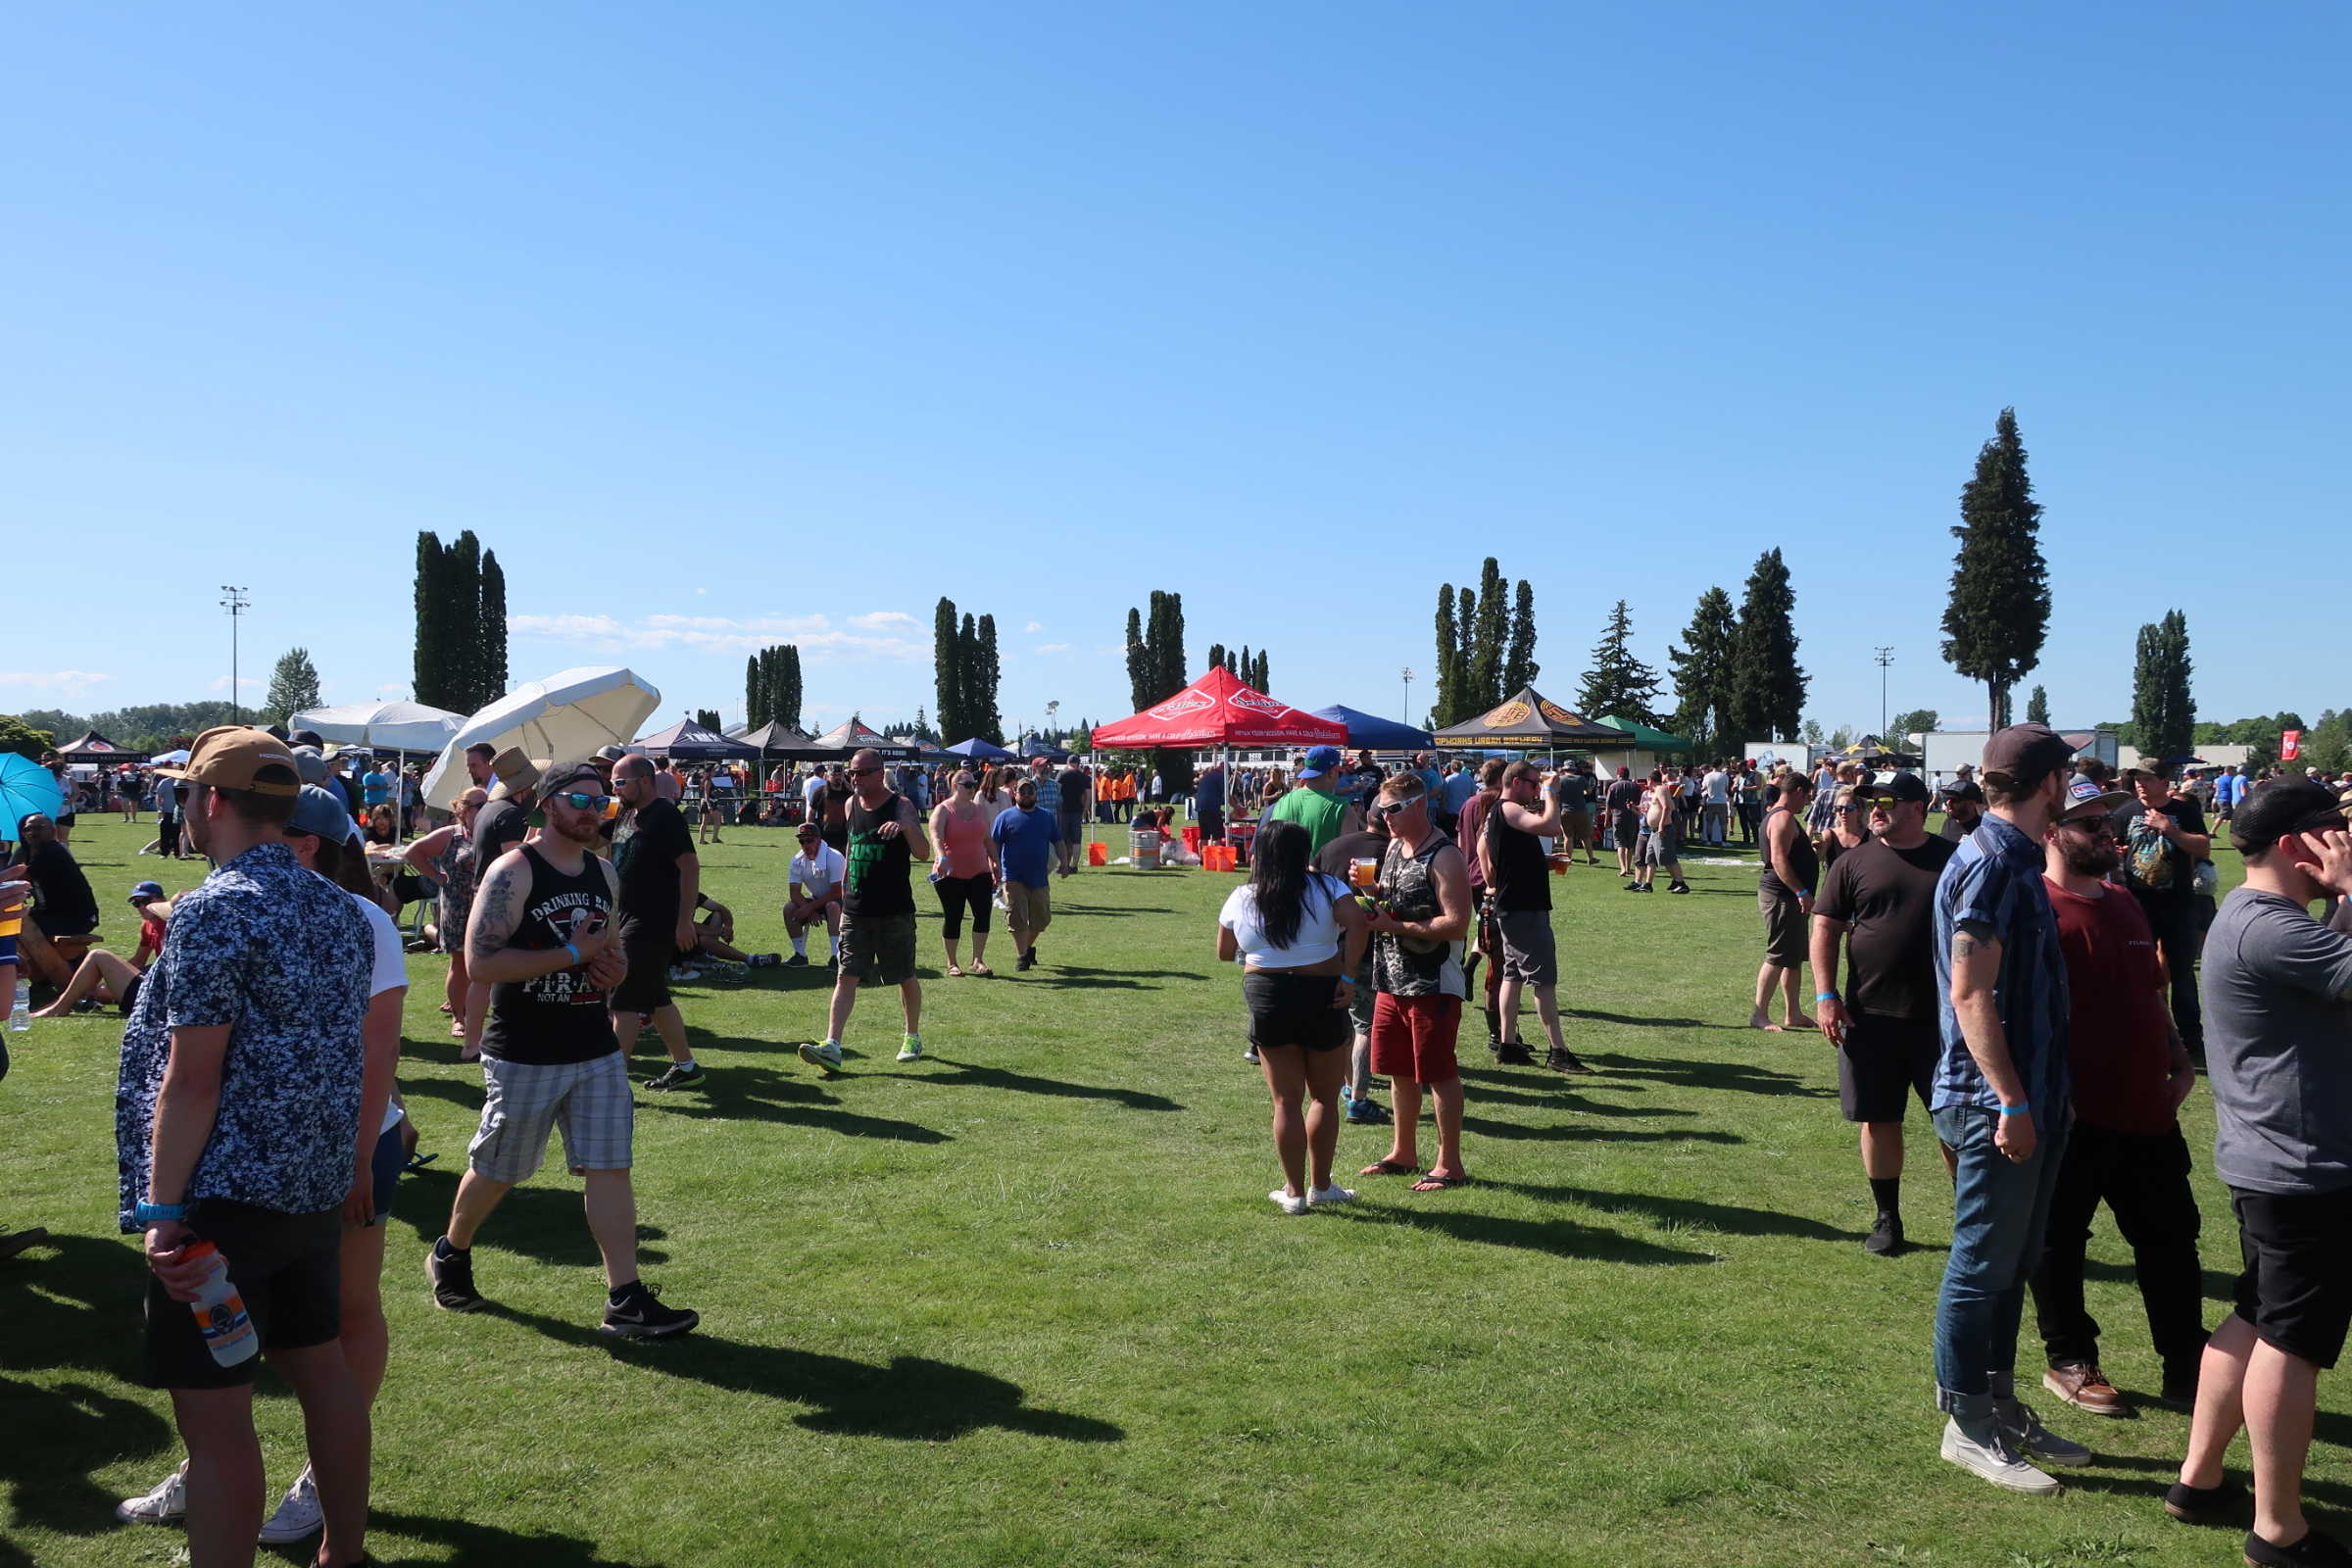 Festive crowd at the 2018 stop of Sabroso Craft Beer, Taco & Music Festival in Portland, Oregon.